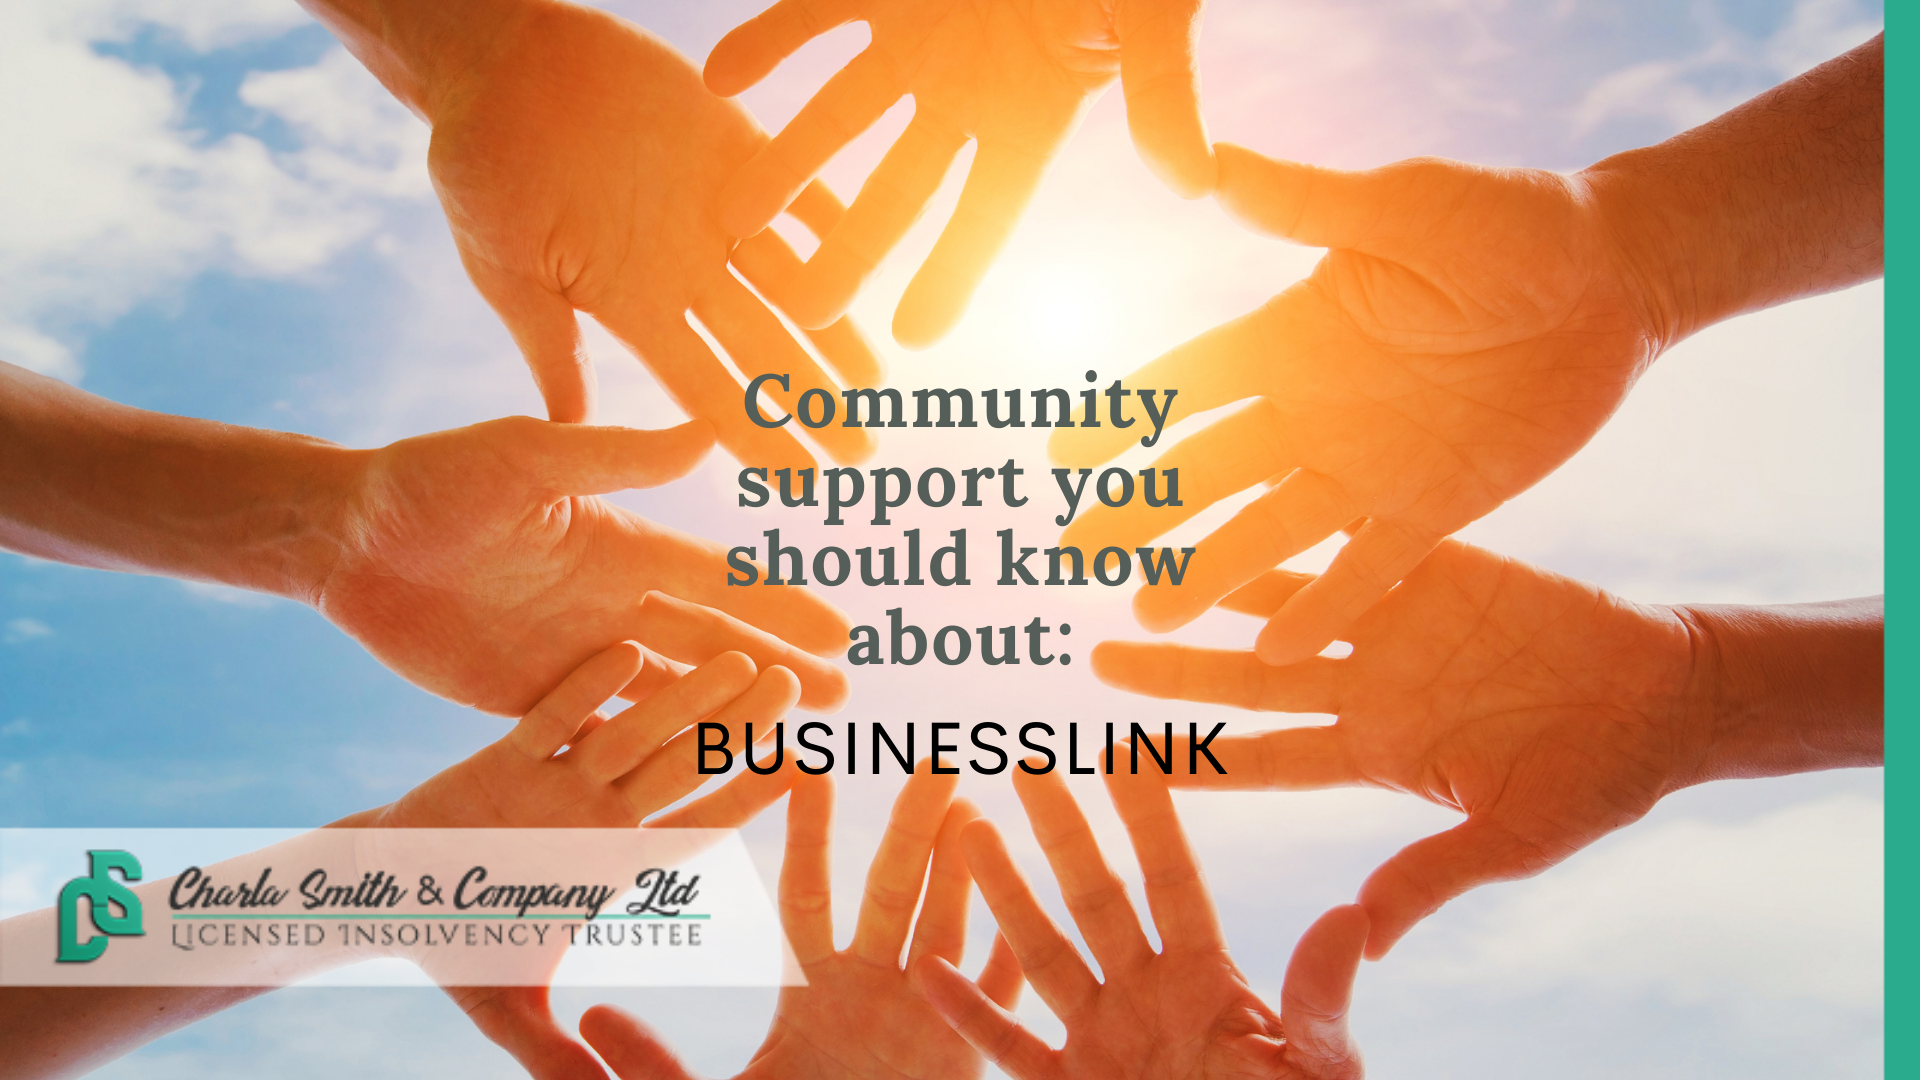 Community support you need to know about: Business Link